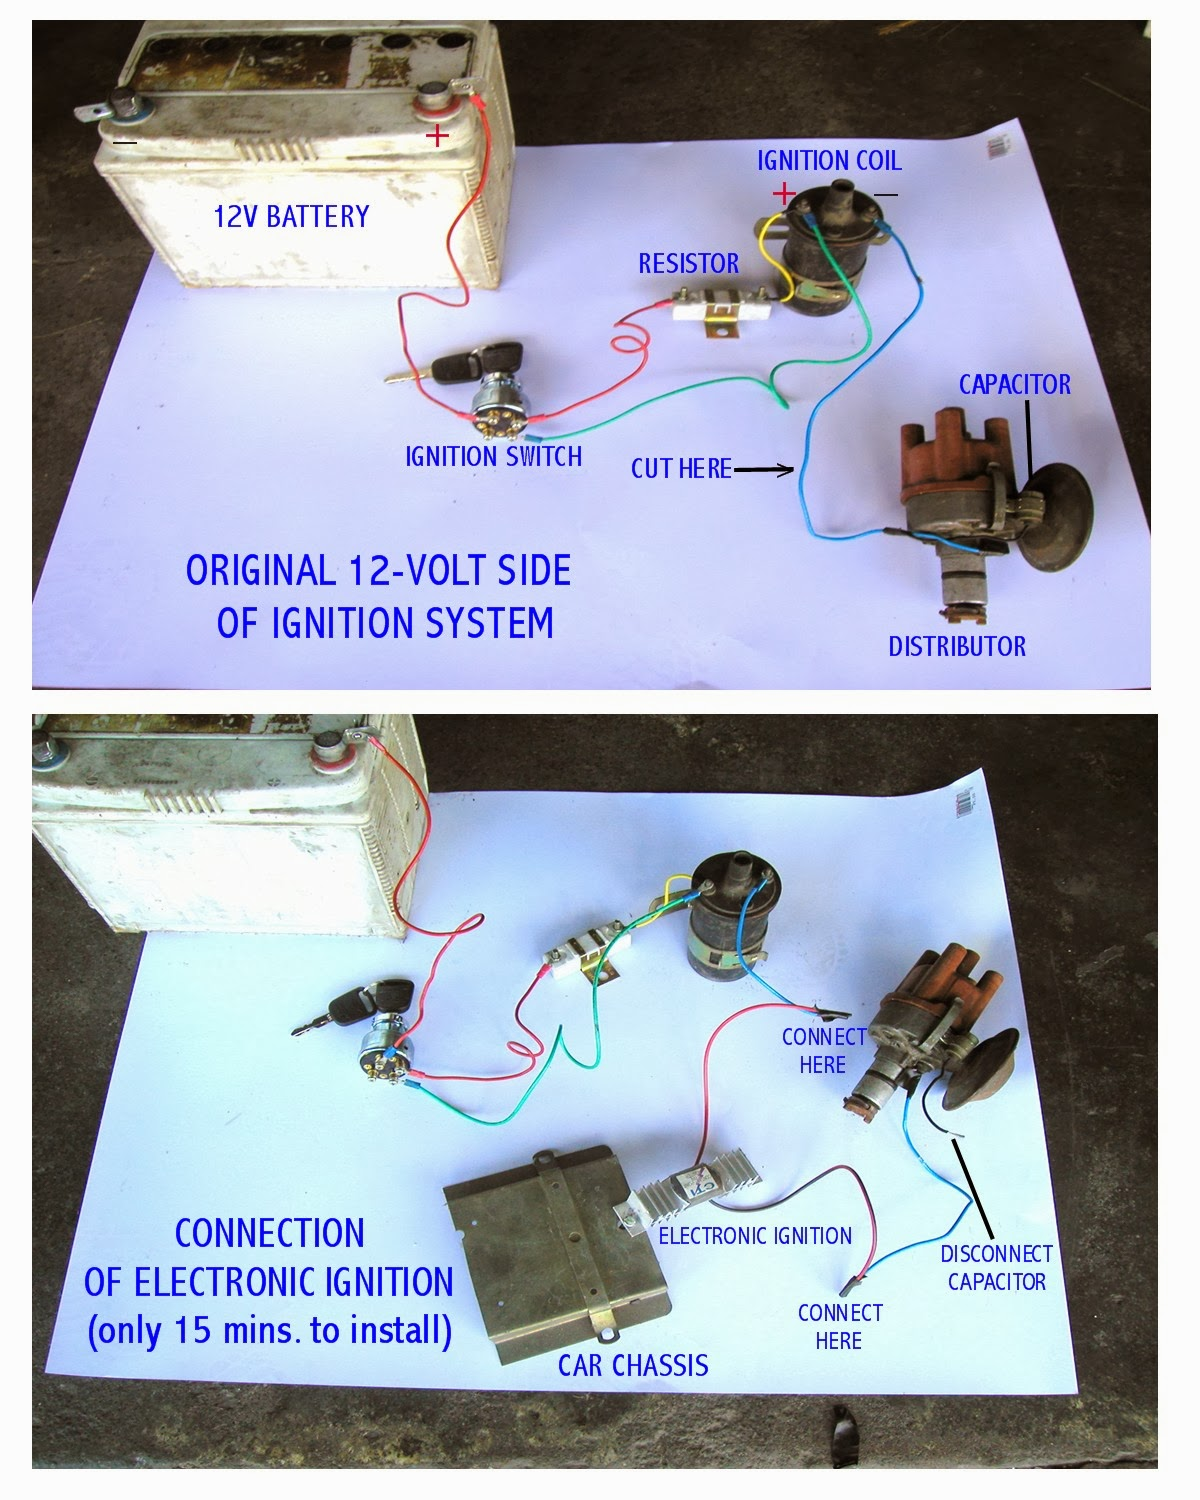 IGNITION+DIAGRAMJPEGRESIZE technology december 2013 toyota tamaraw fx electrical wiring diagram at n-0.co